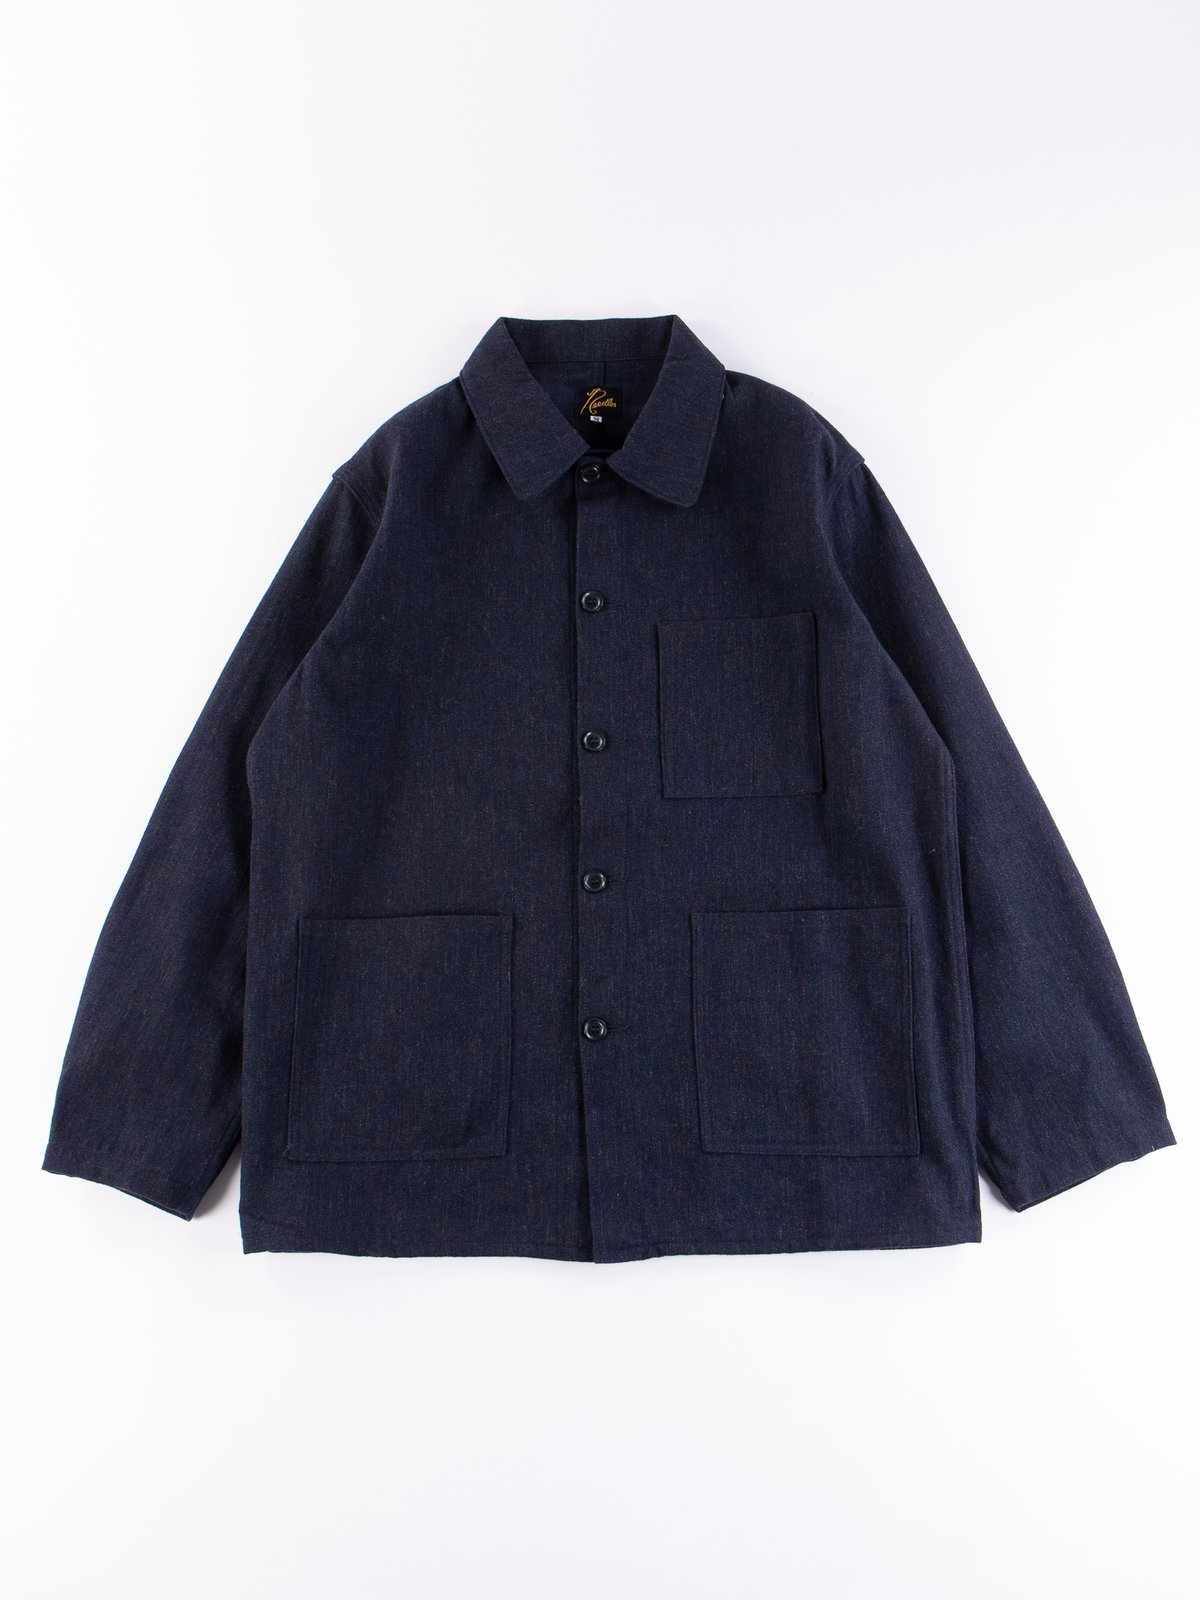 Navy Wool/Cotton Serge D.N Coverall - Image 1